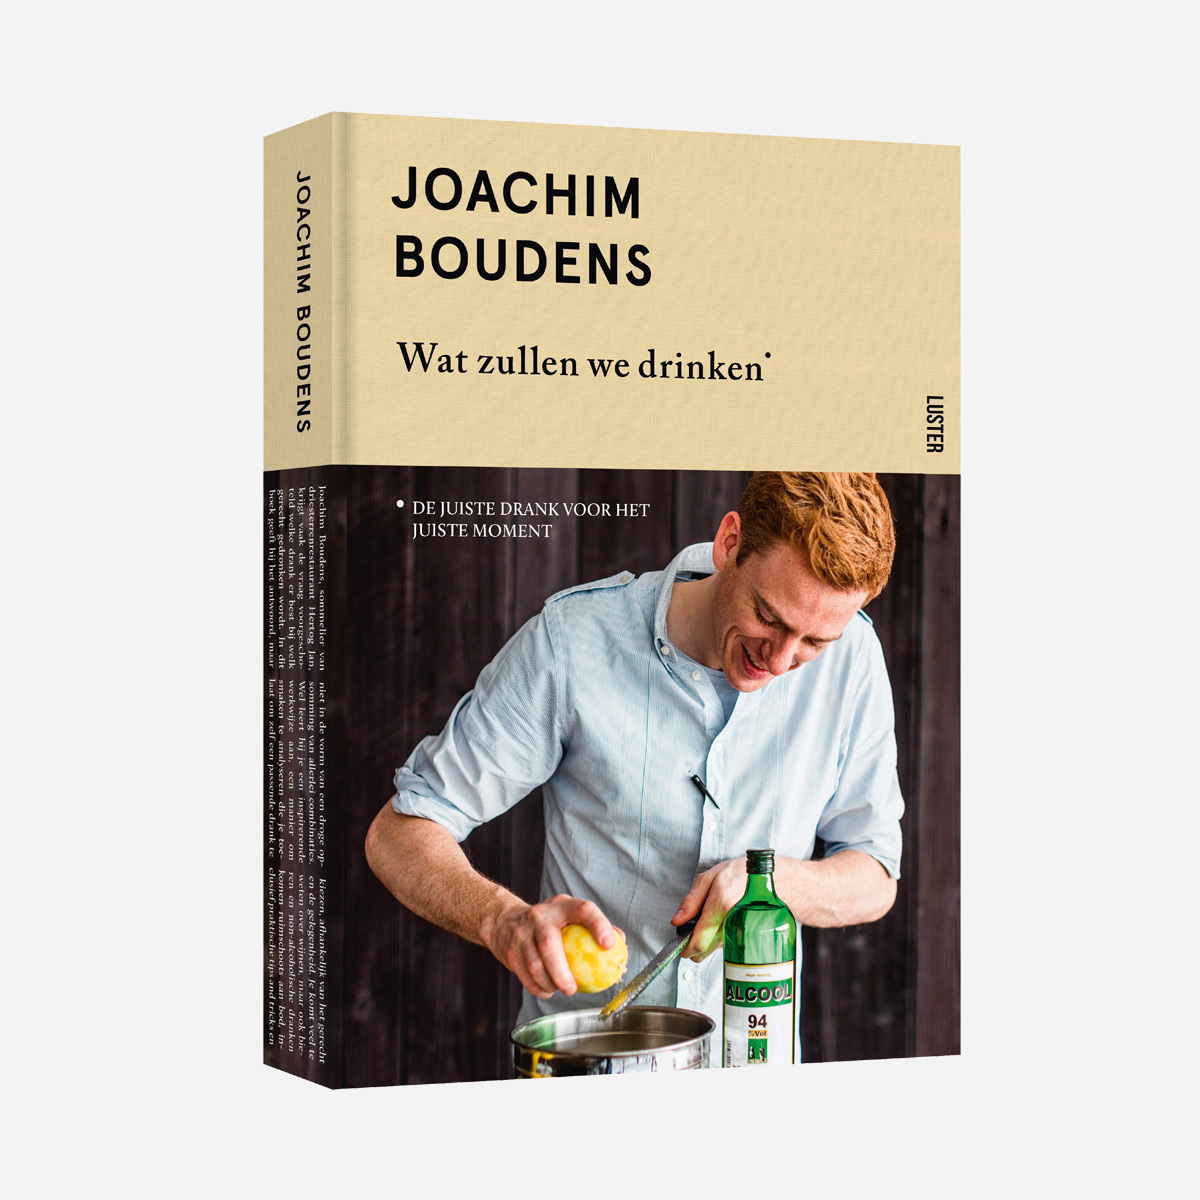 hj_shop_book_joachim.jpg